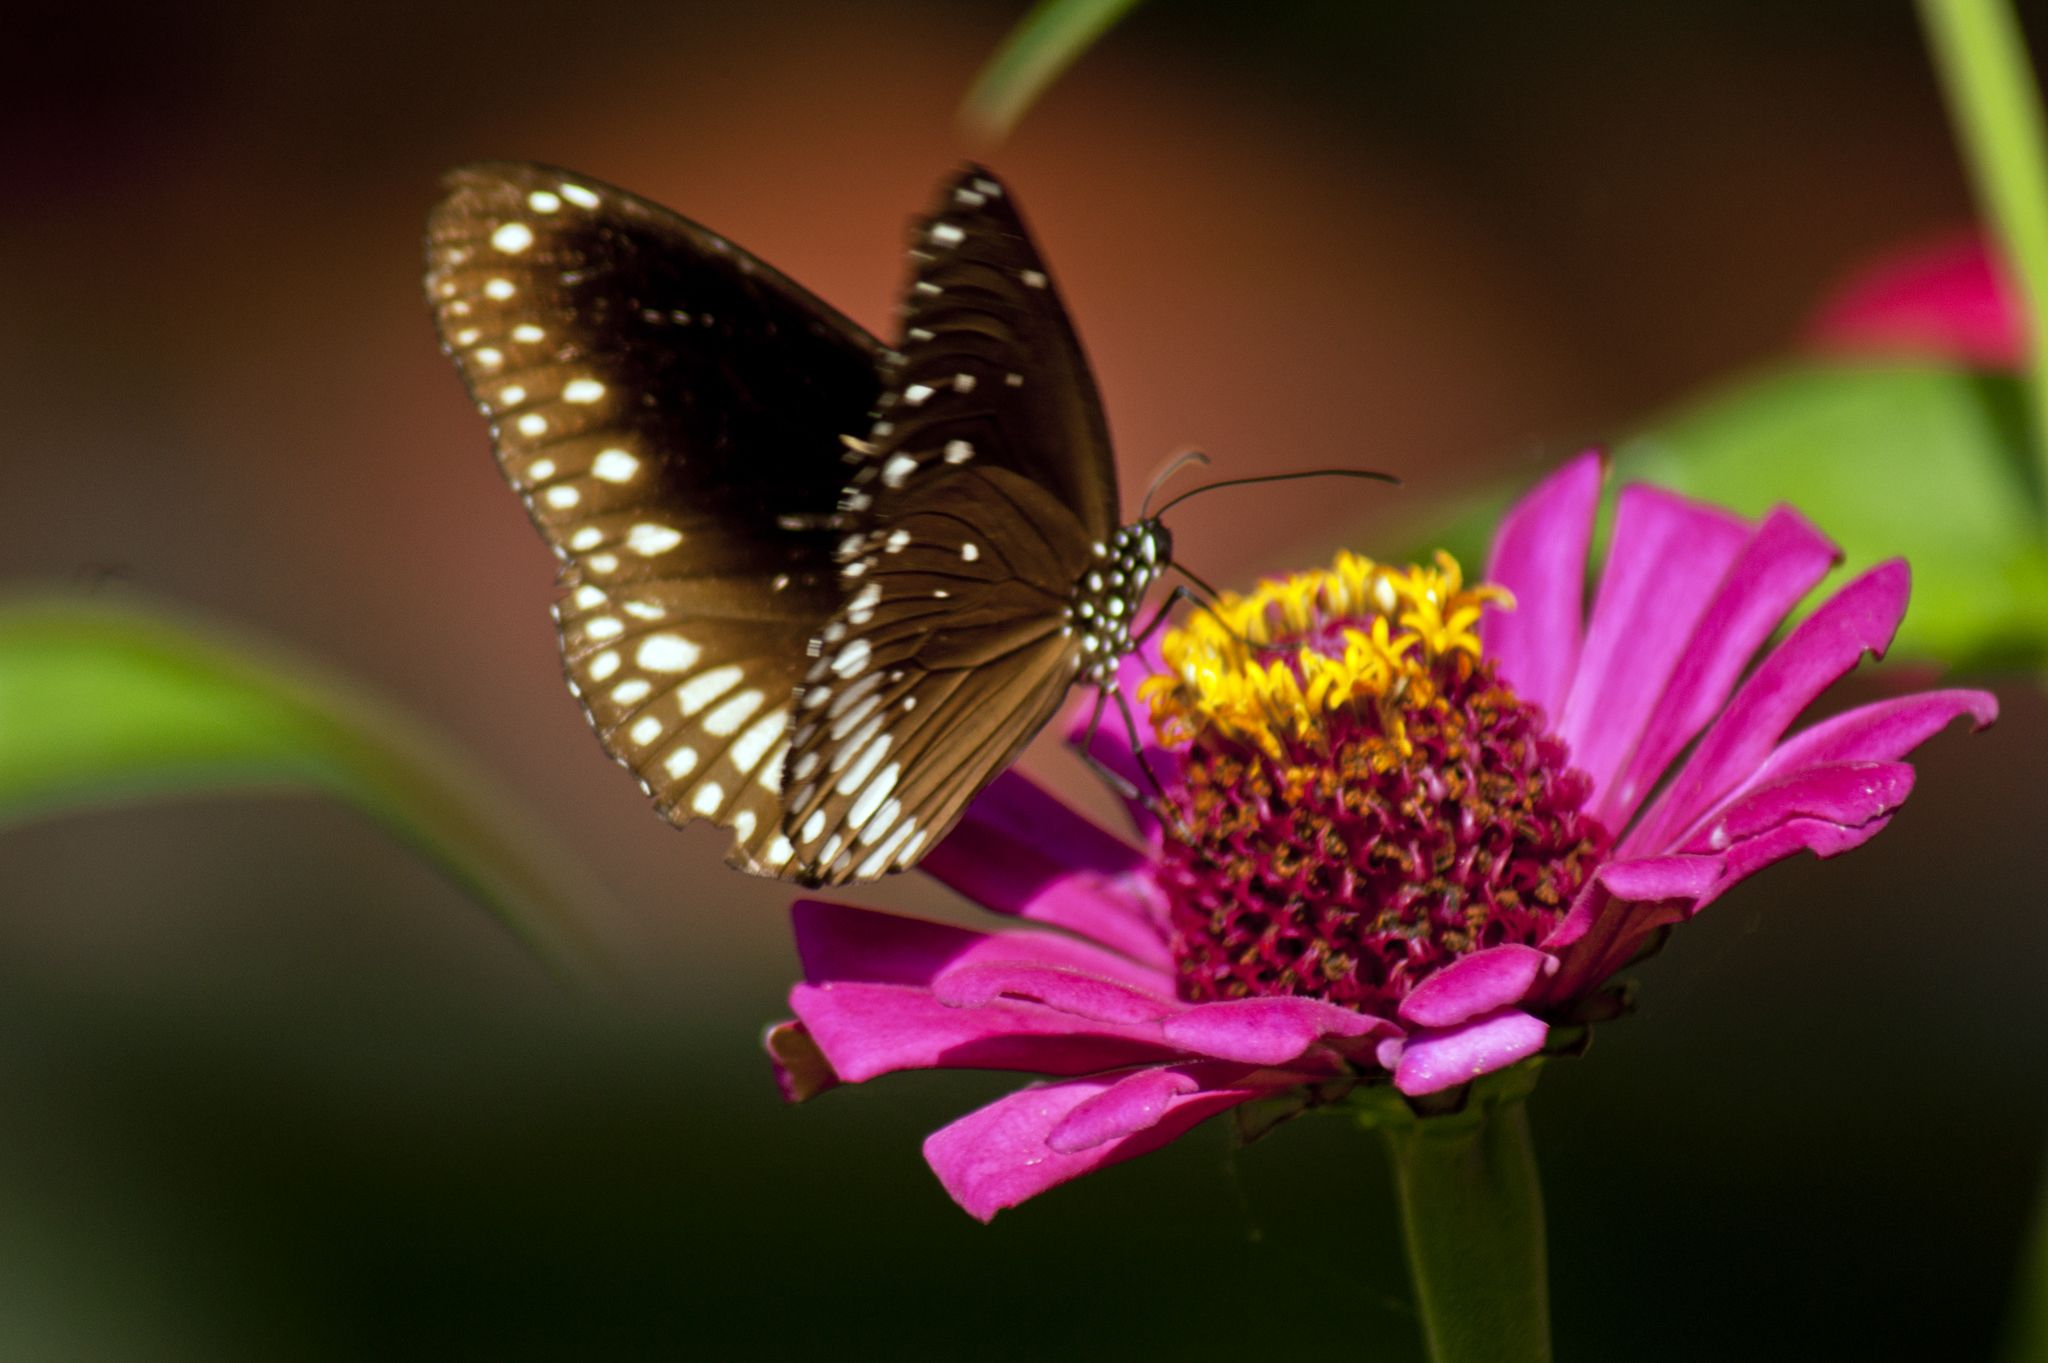 what of flowers attract butterflies butterfly flowers and